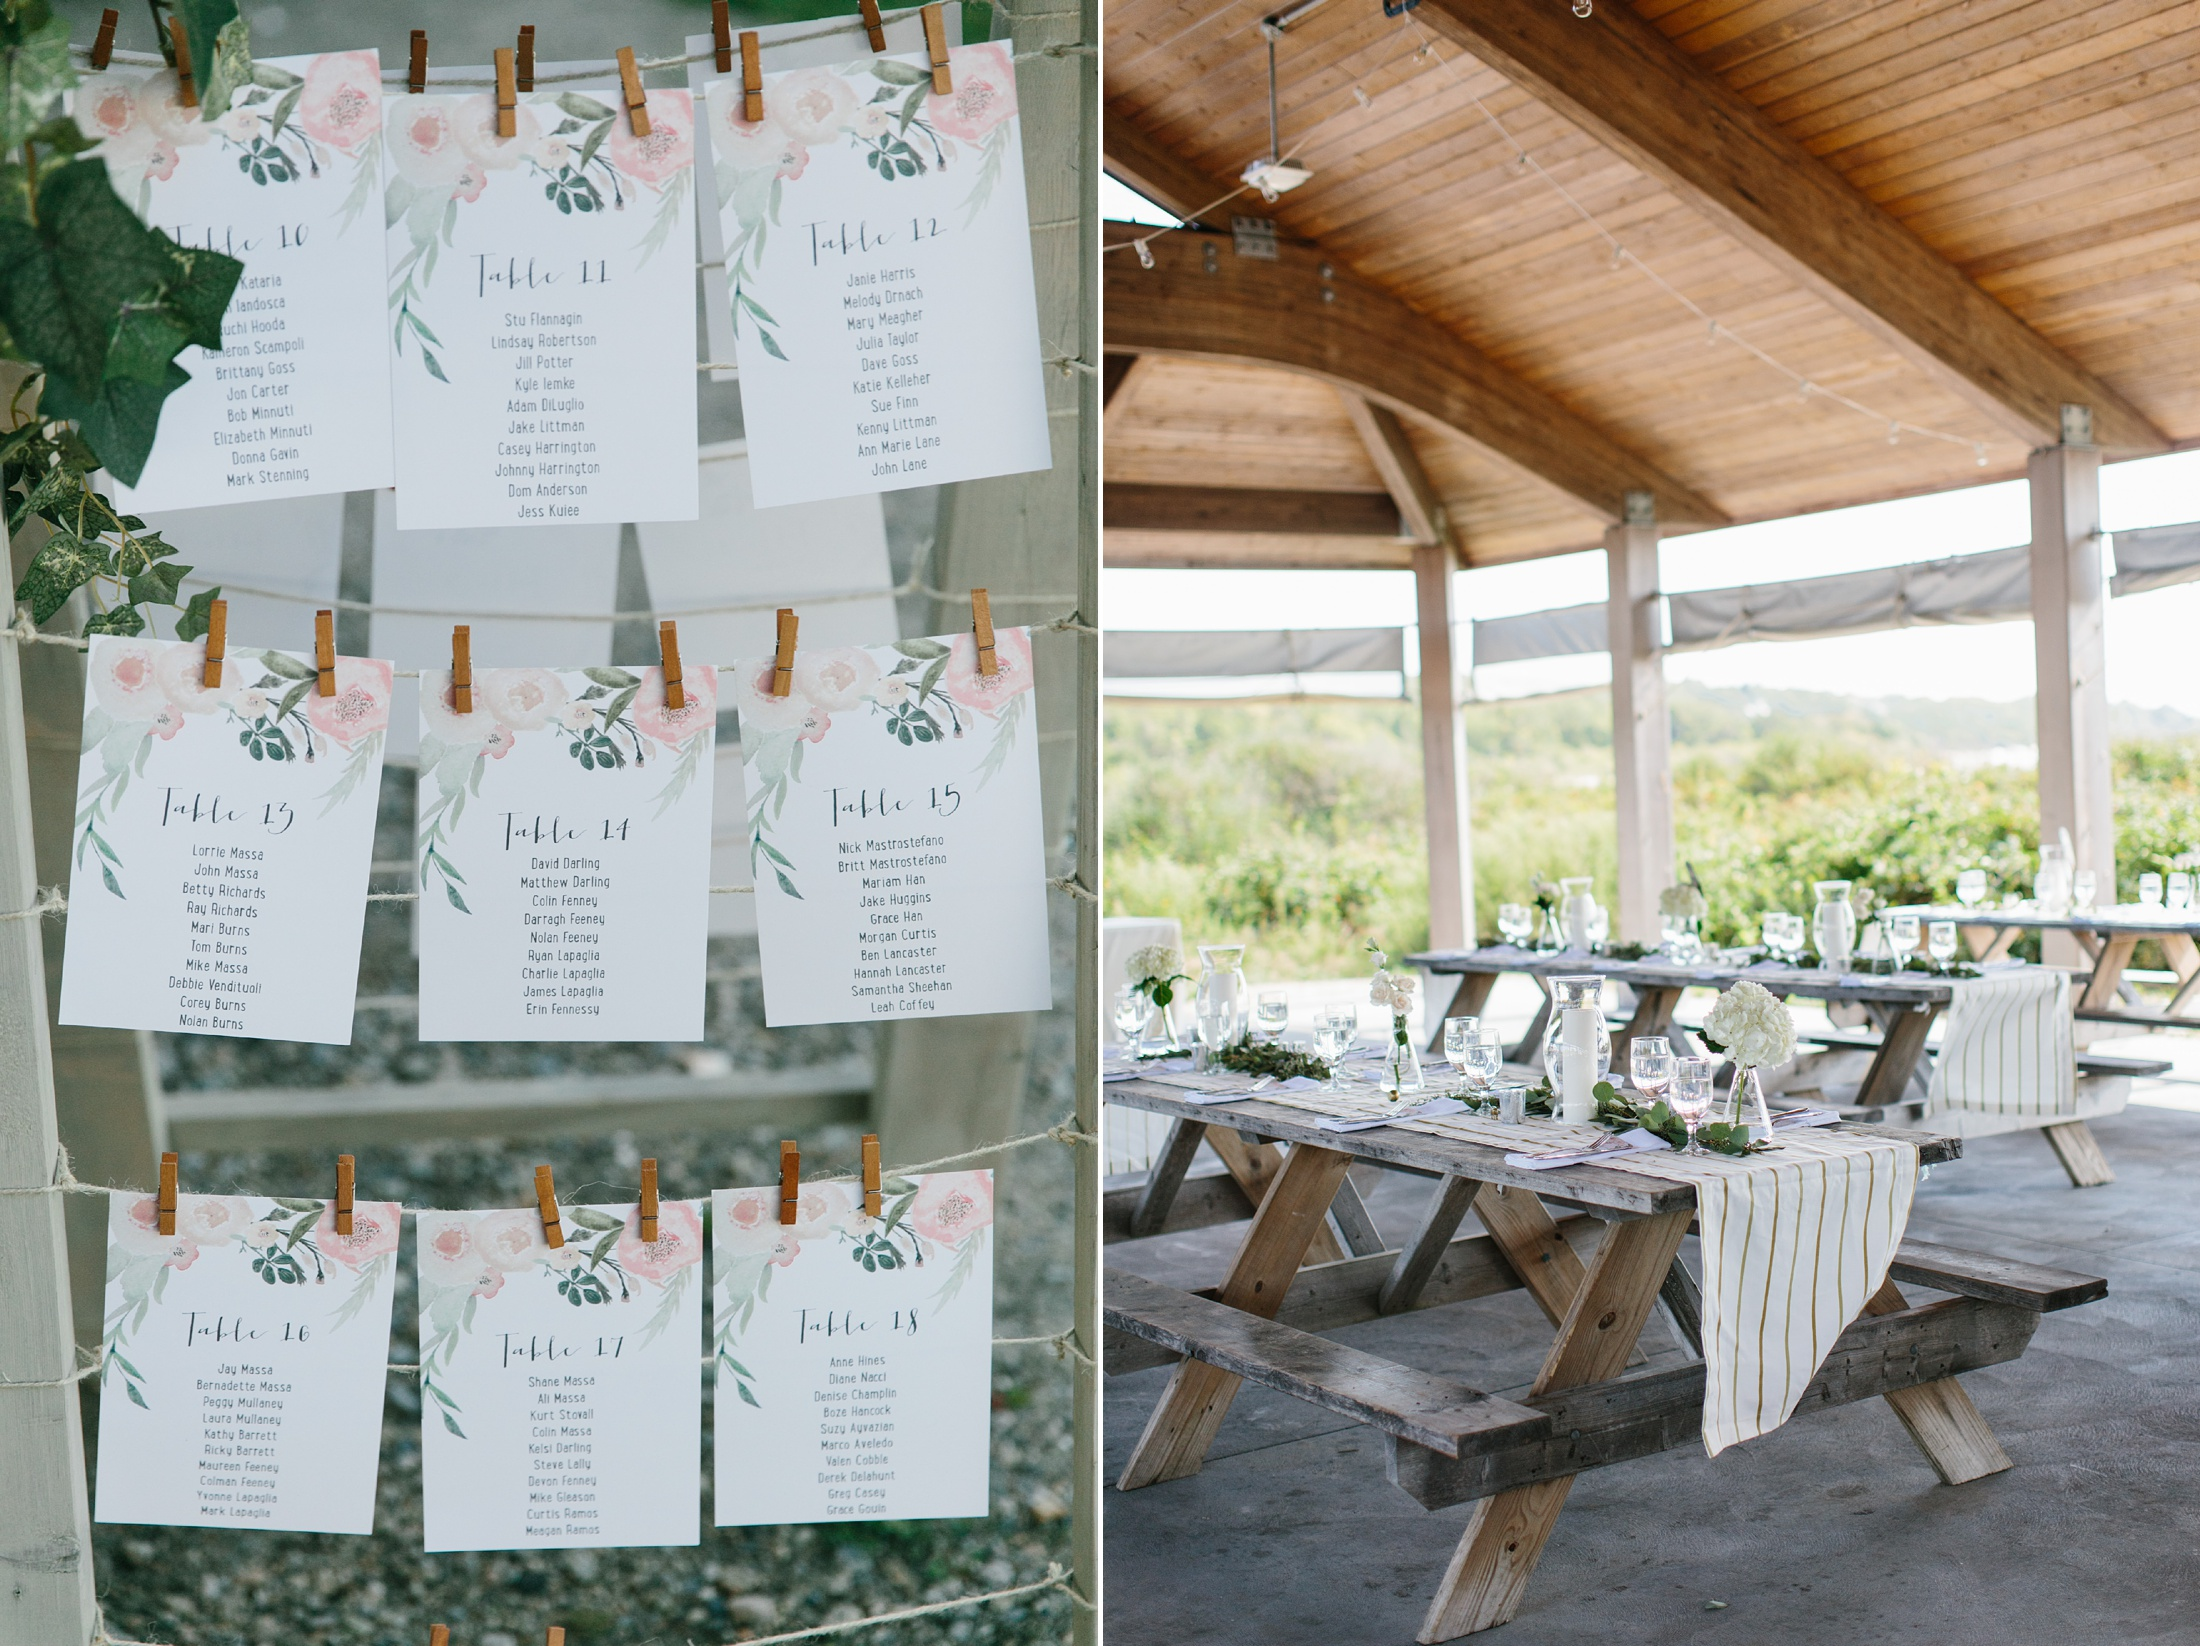 fort getty pavilion set for wedding